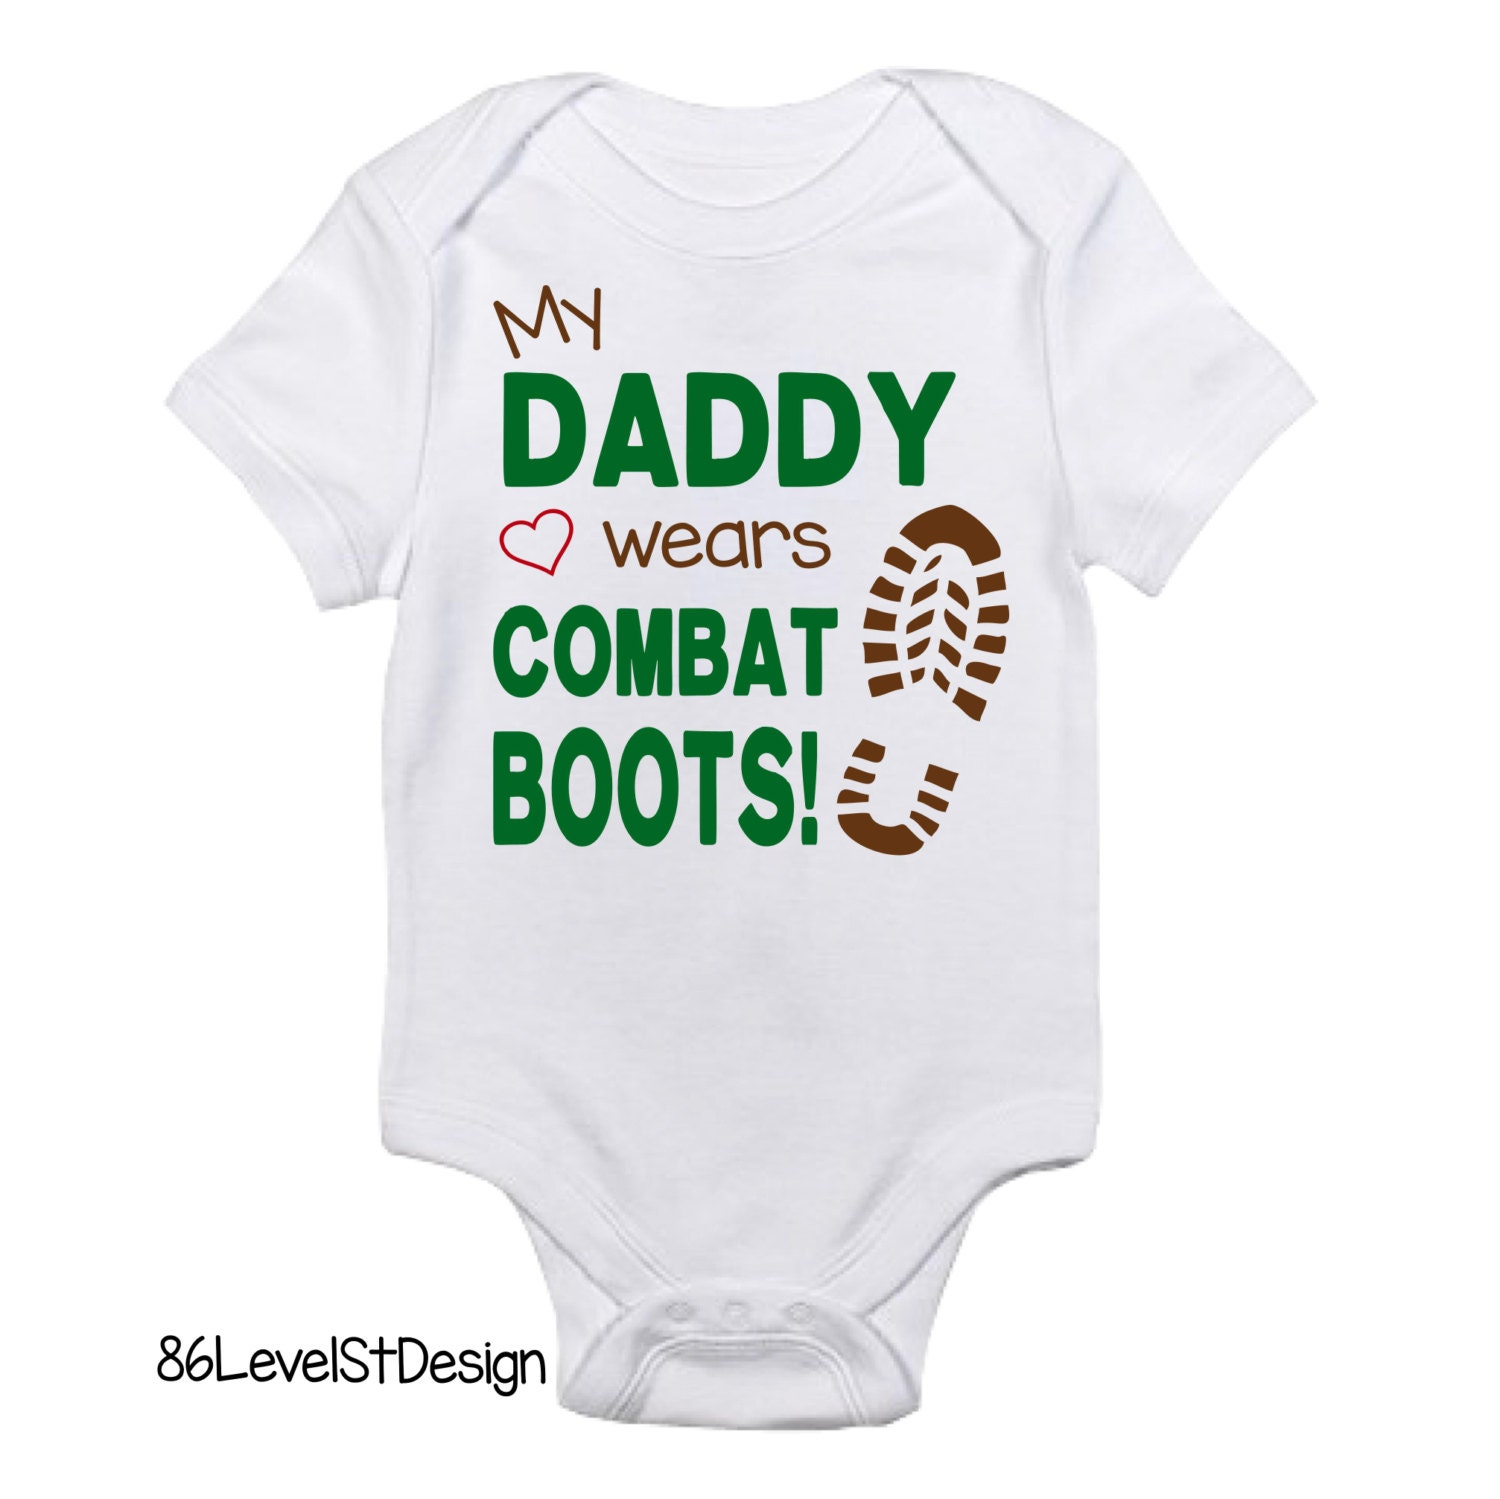 my daddy mommy wears combat boots onesie tshirt military